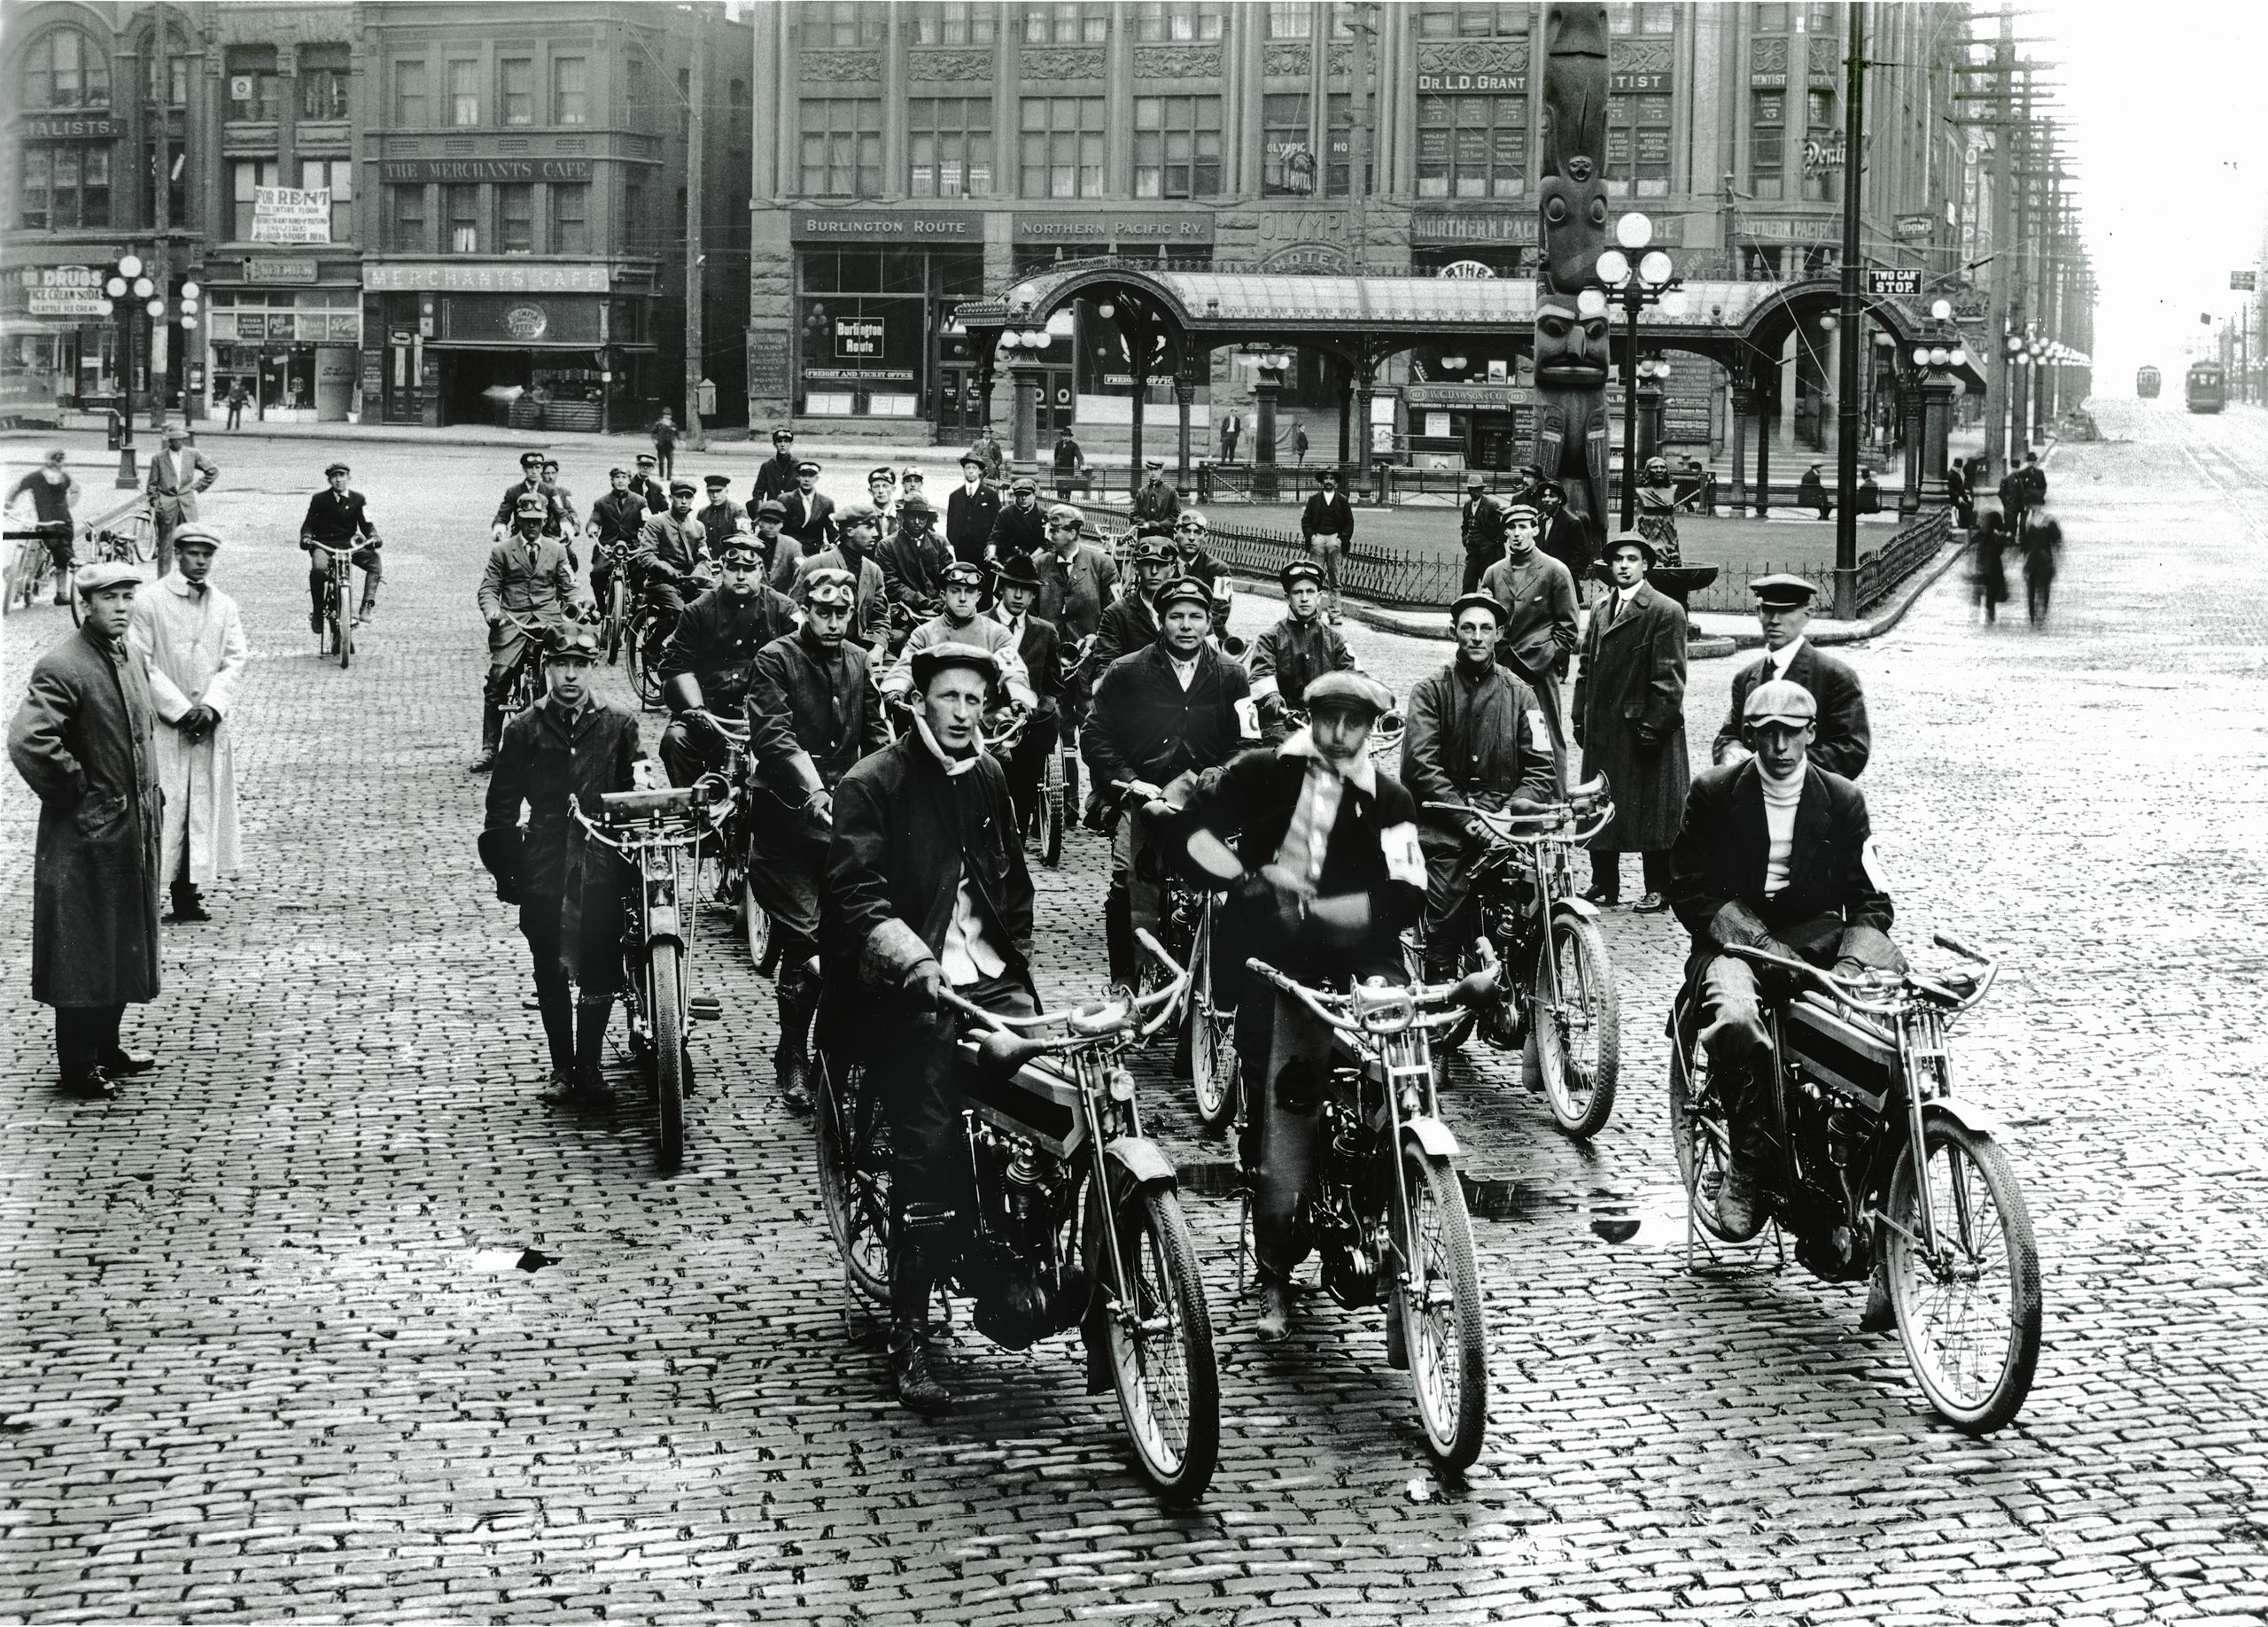 Black and white photo of motorcyclists